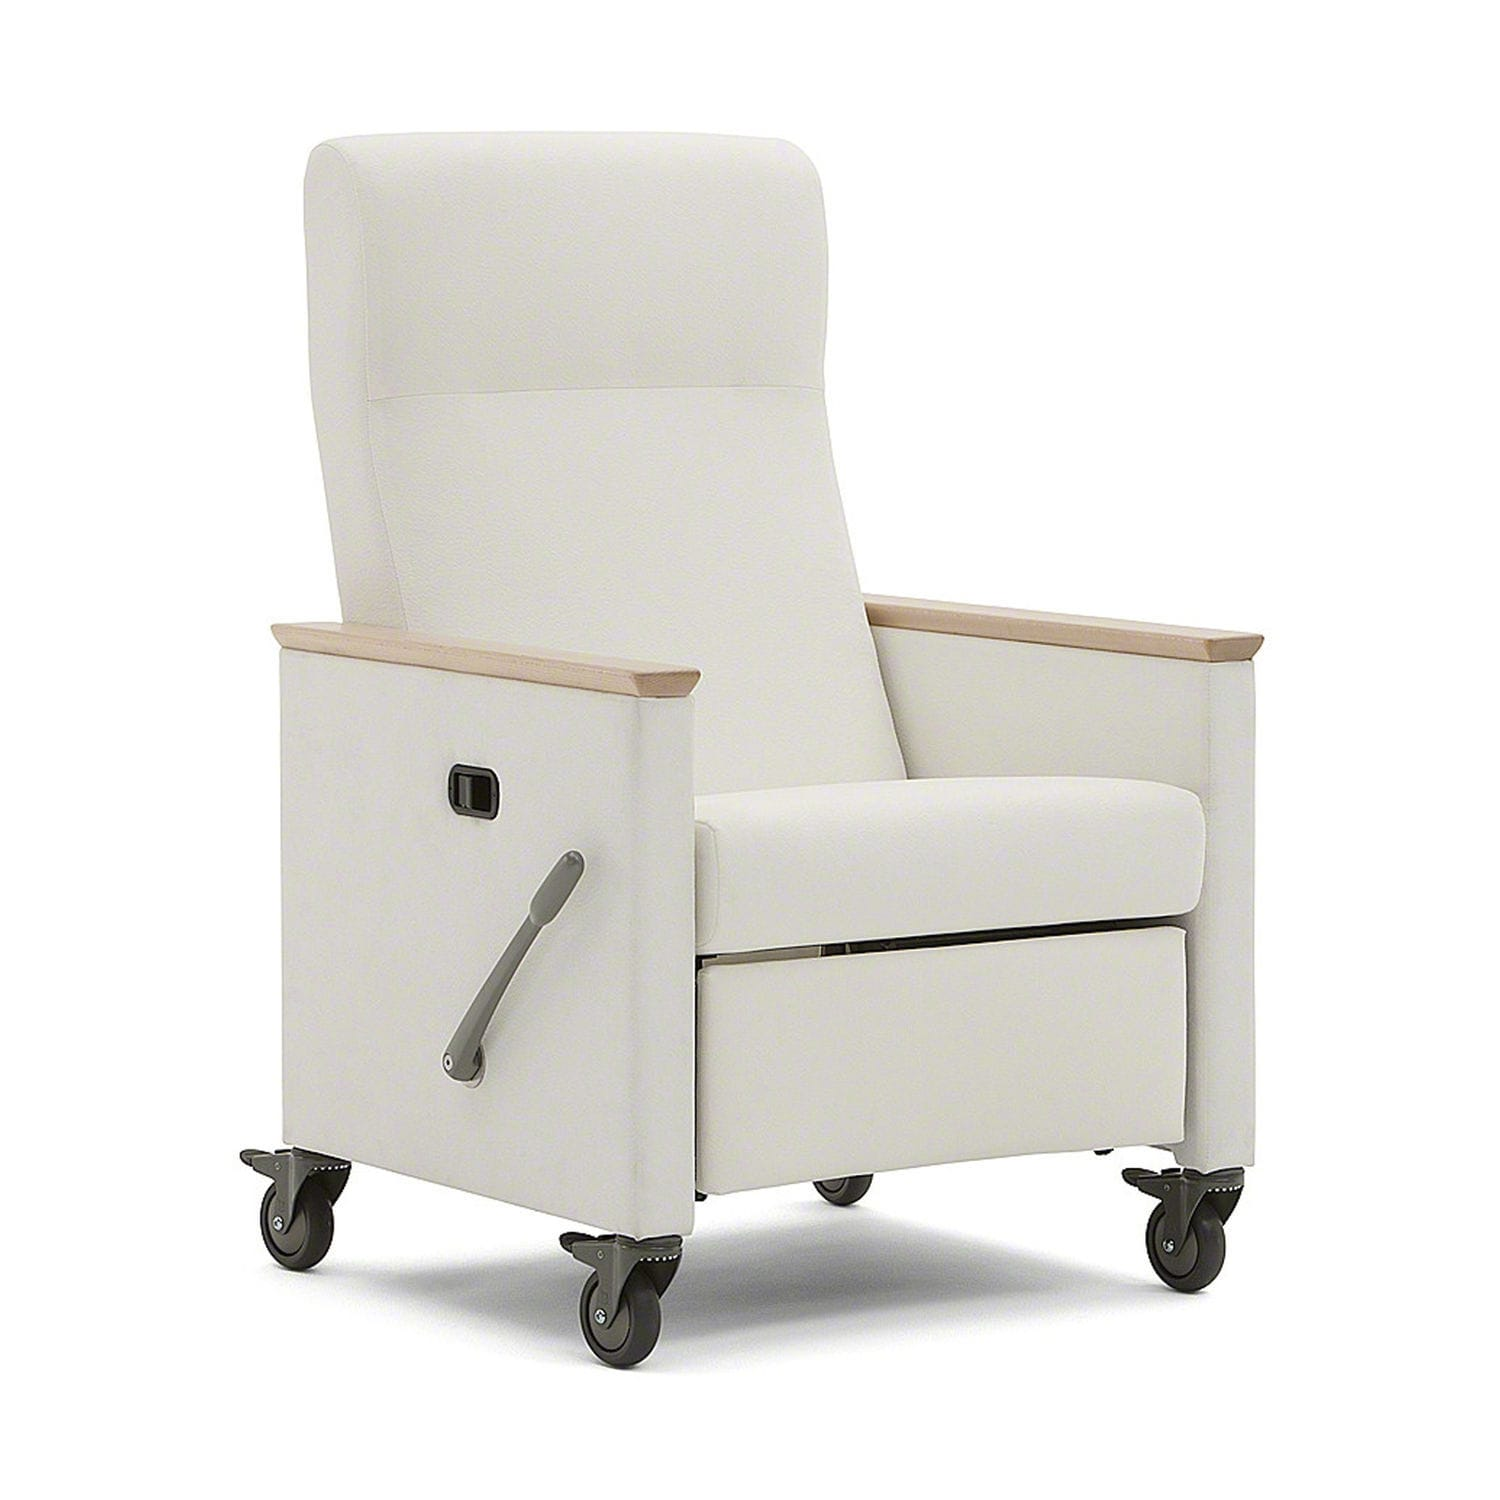 Reclining patient chair on casters manual Mineral™ Nurture